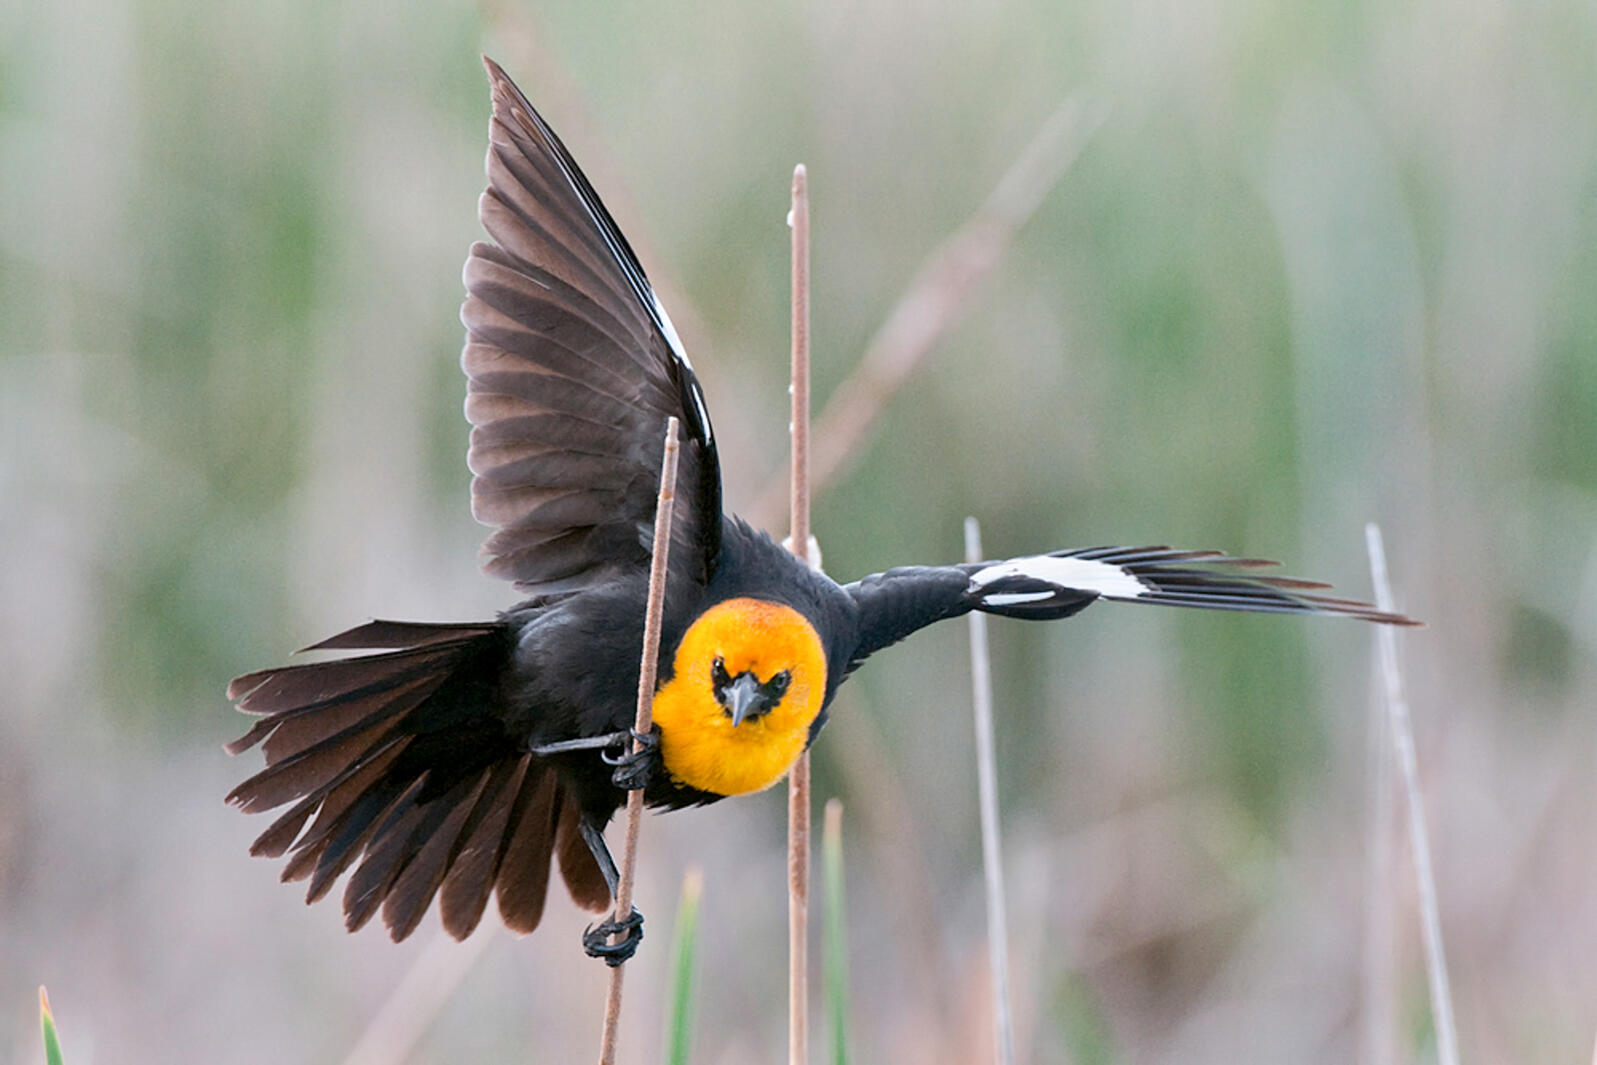 Photo of a Yellow-headed Blackbird. Credit: Gene Putney/Audubon Photography Awards